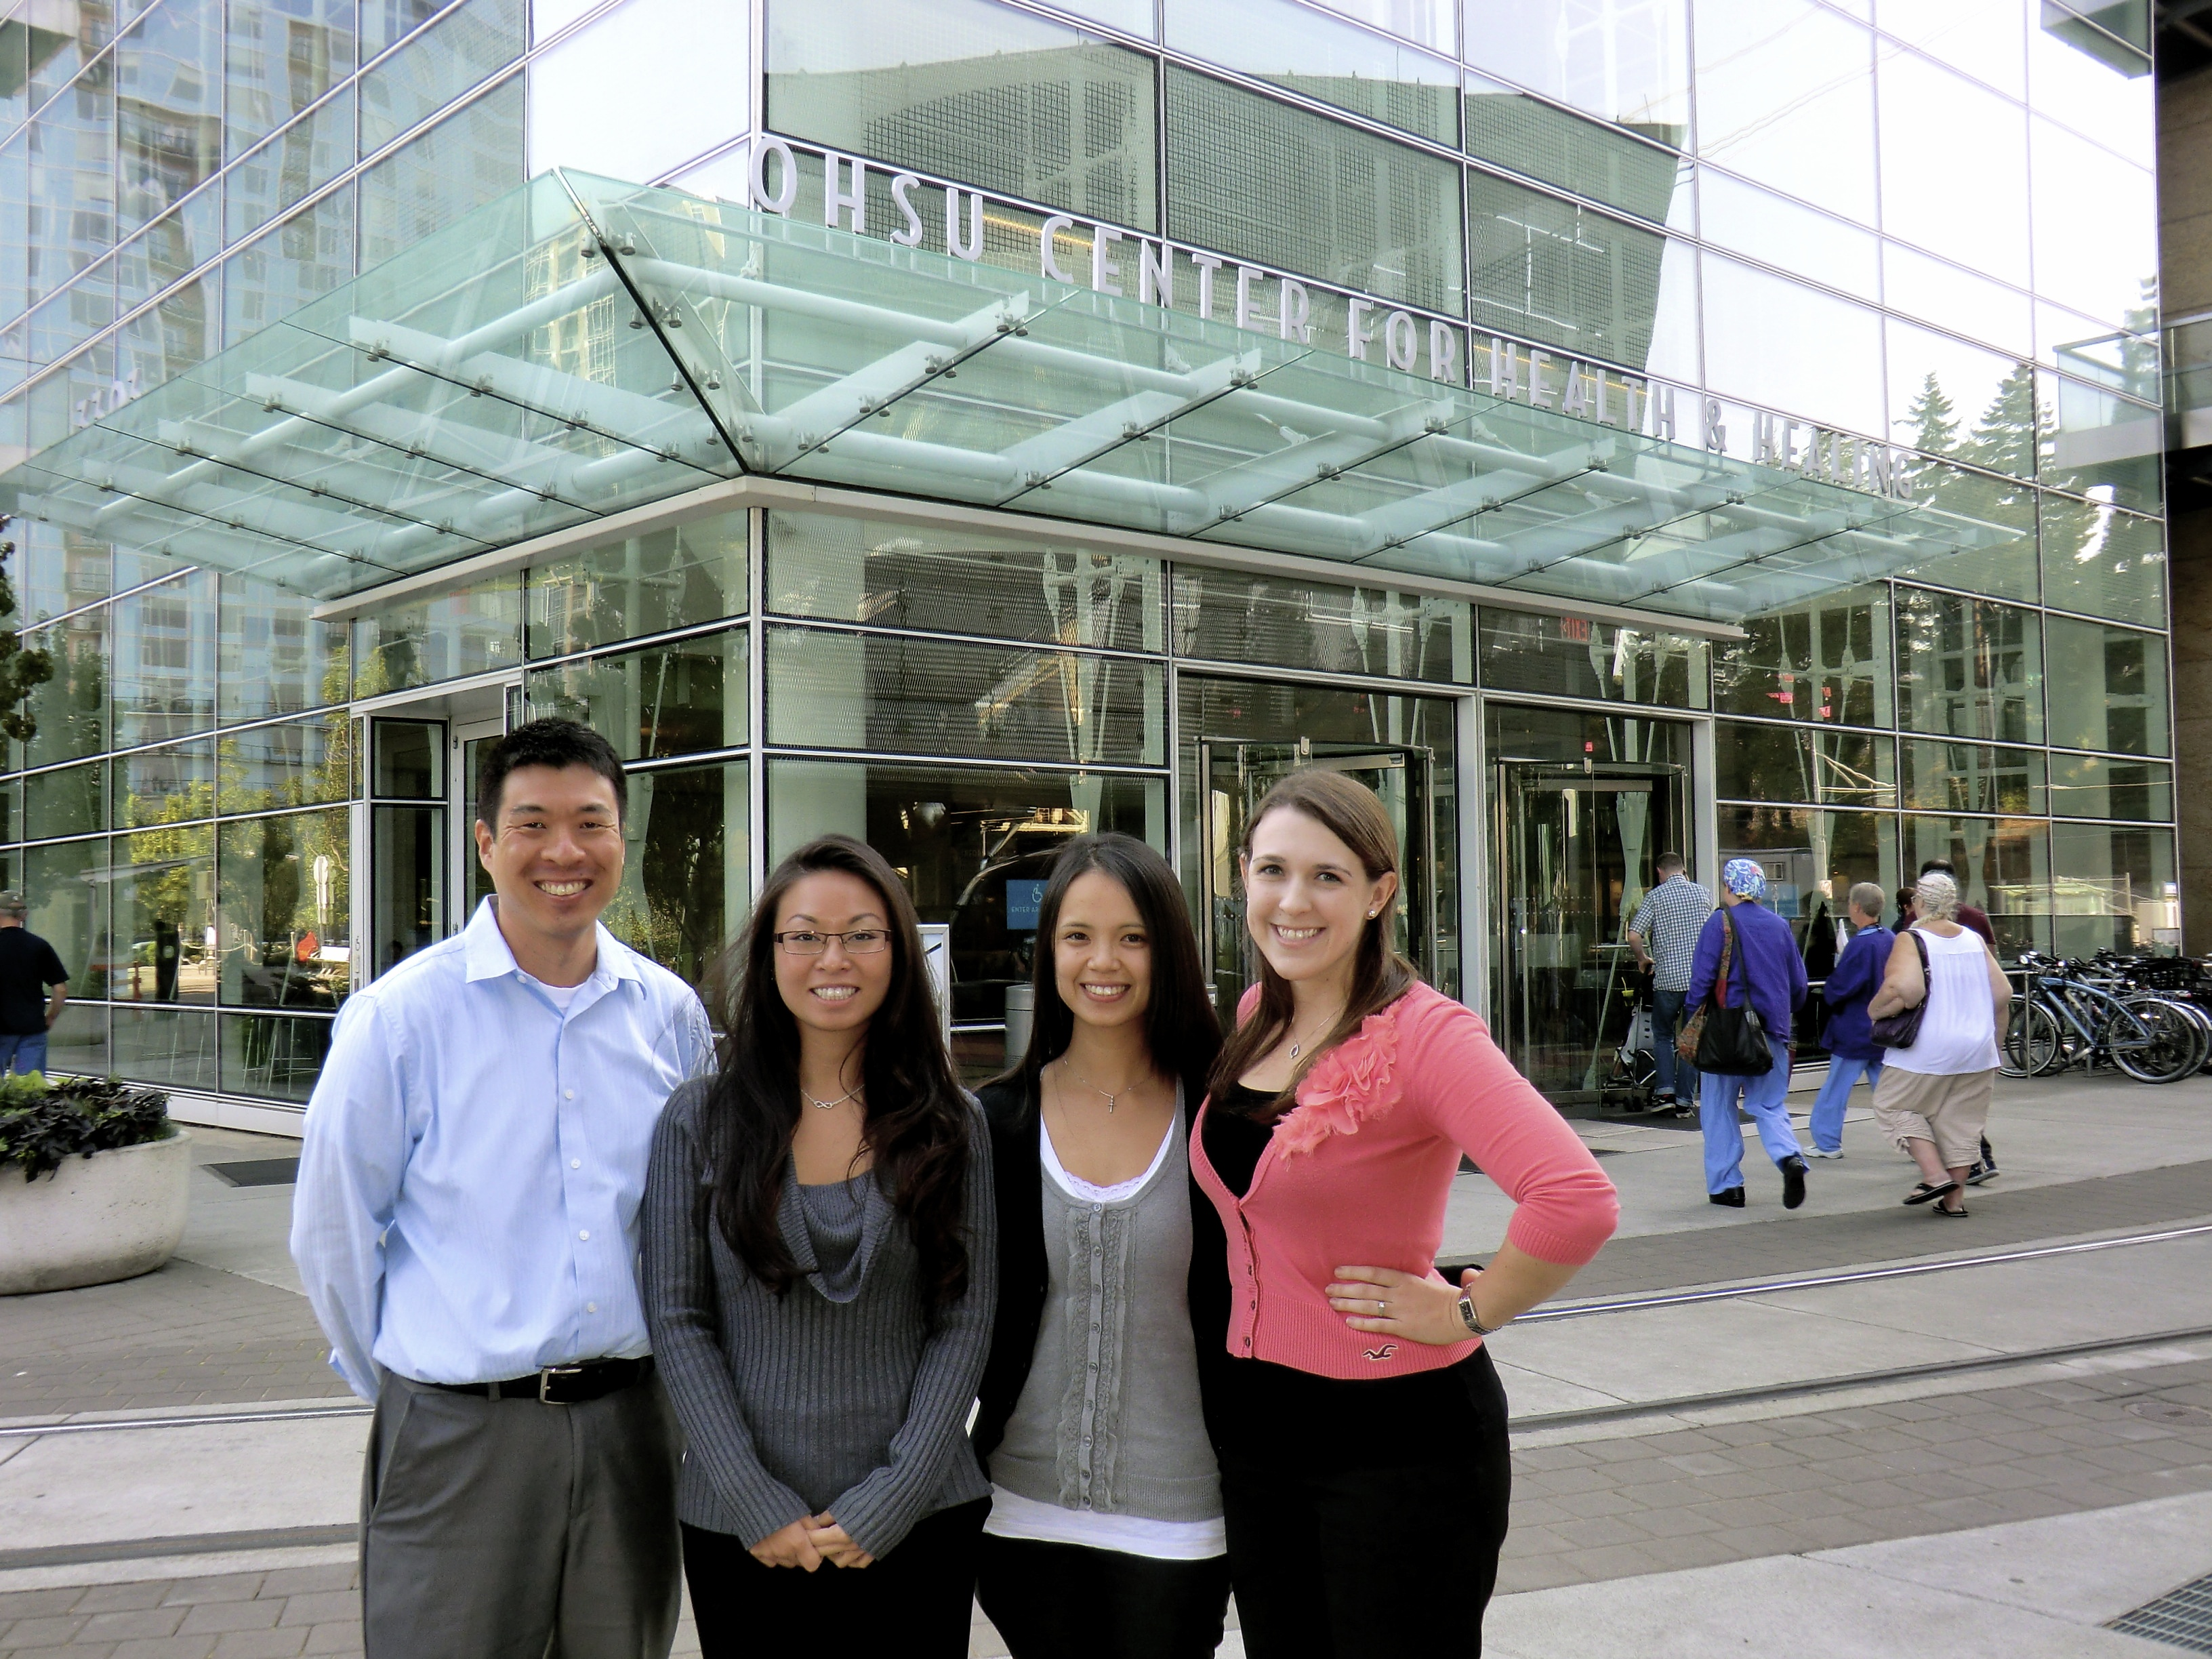 Residents at OHSU Workshop